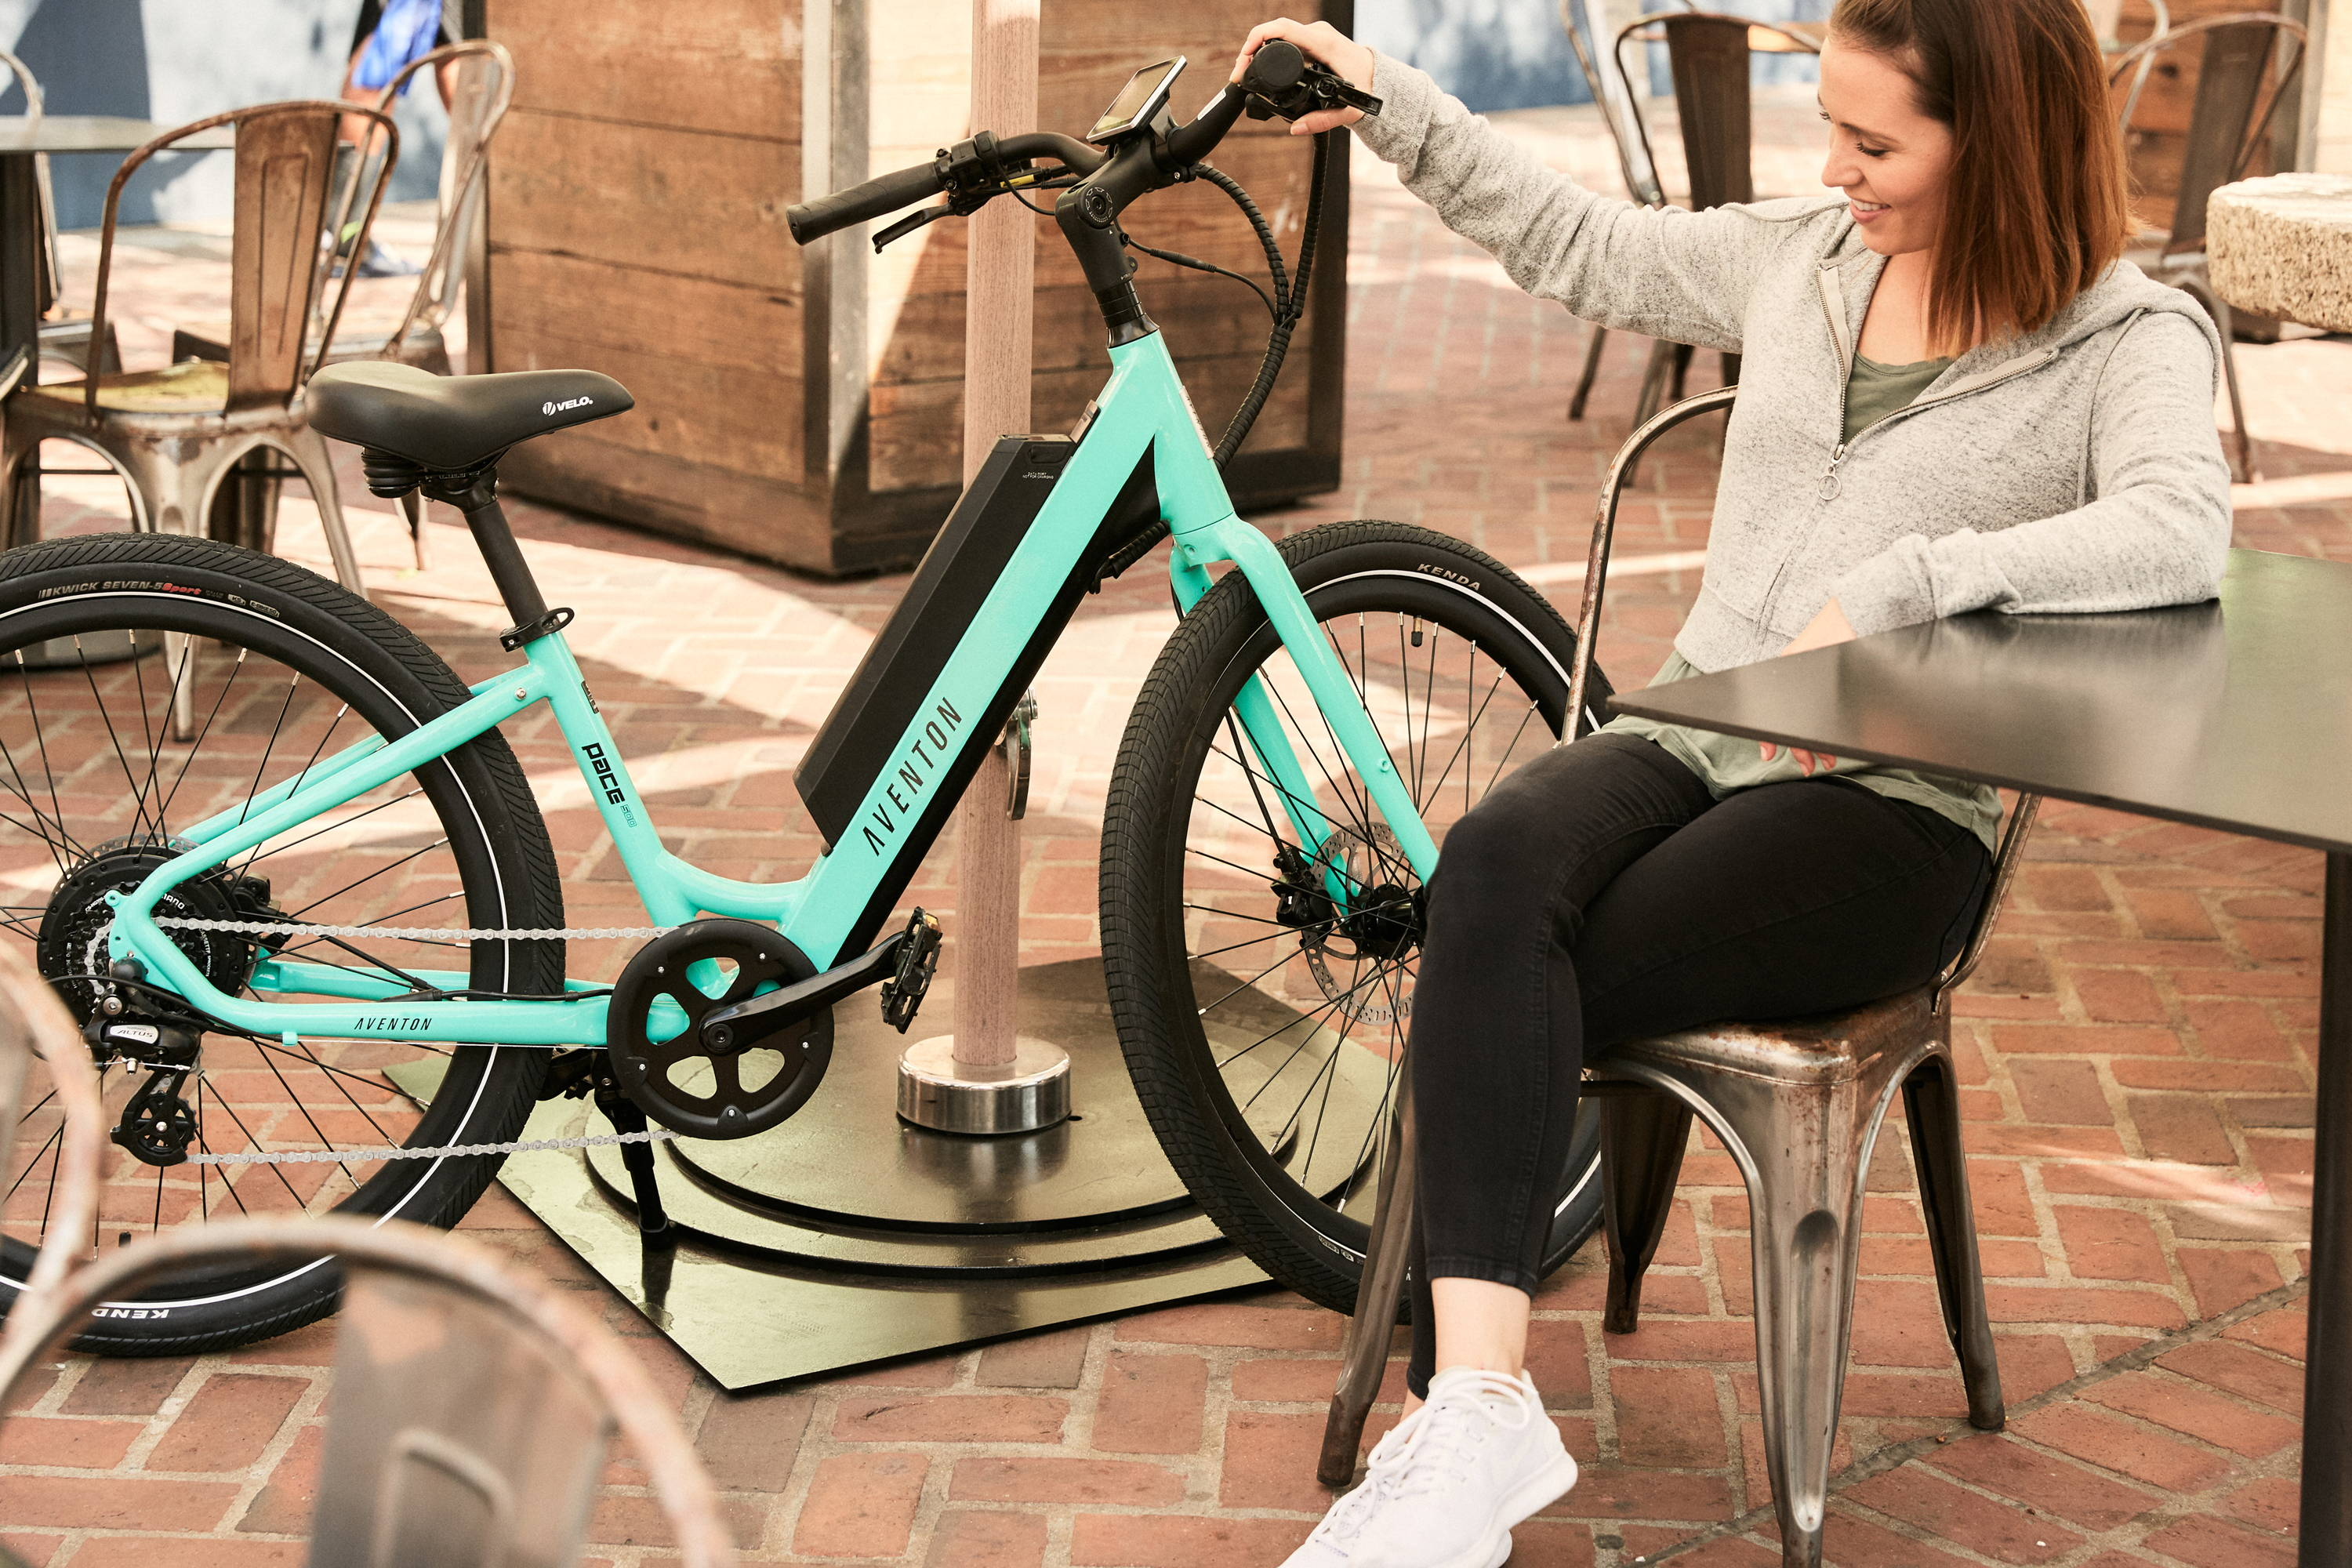 Aventon sells one of the most affordable Ebikes.